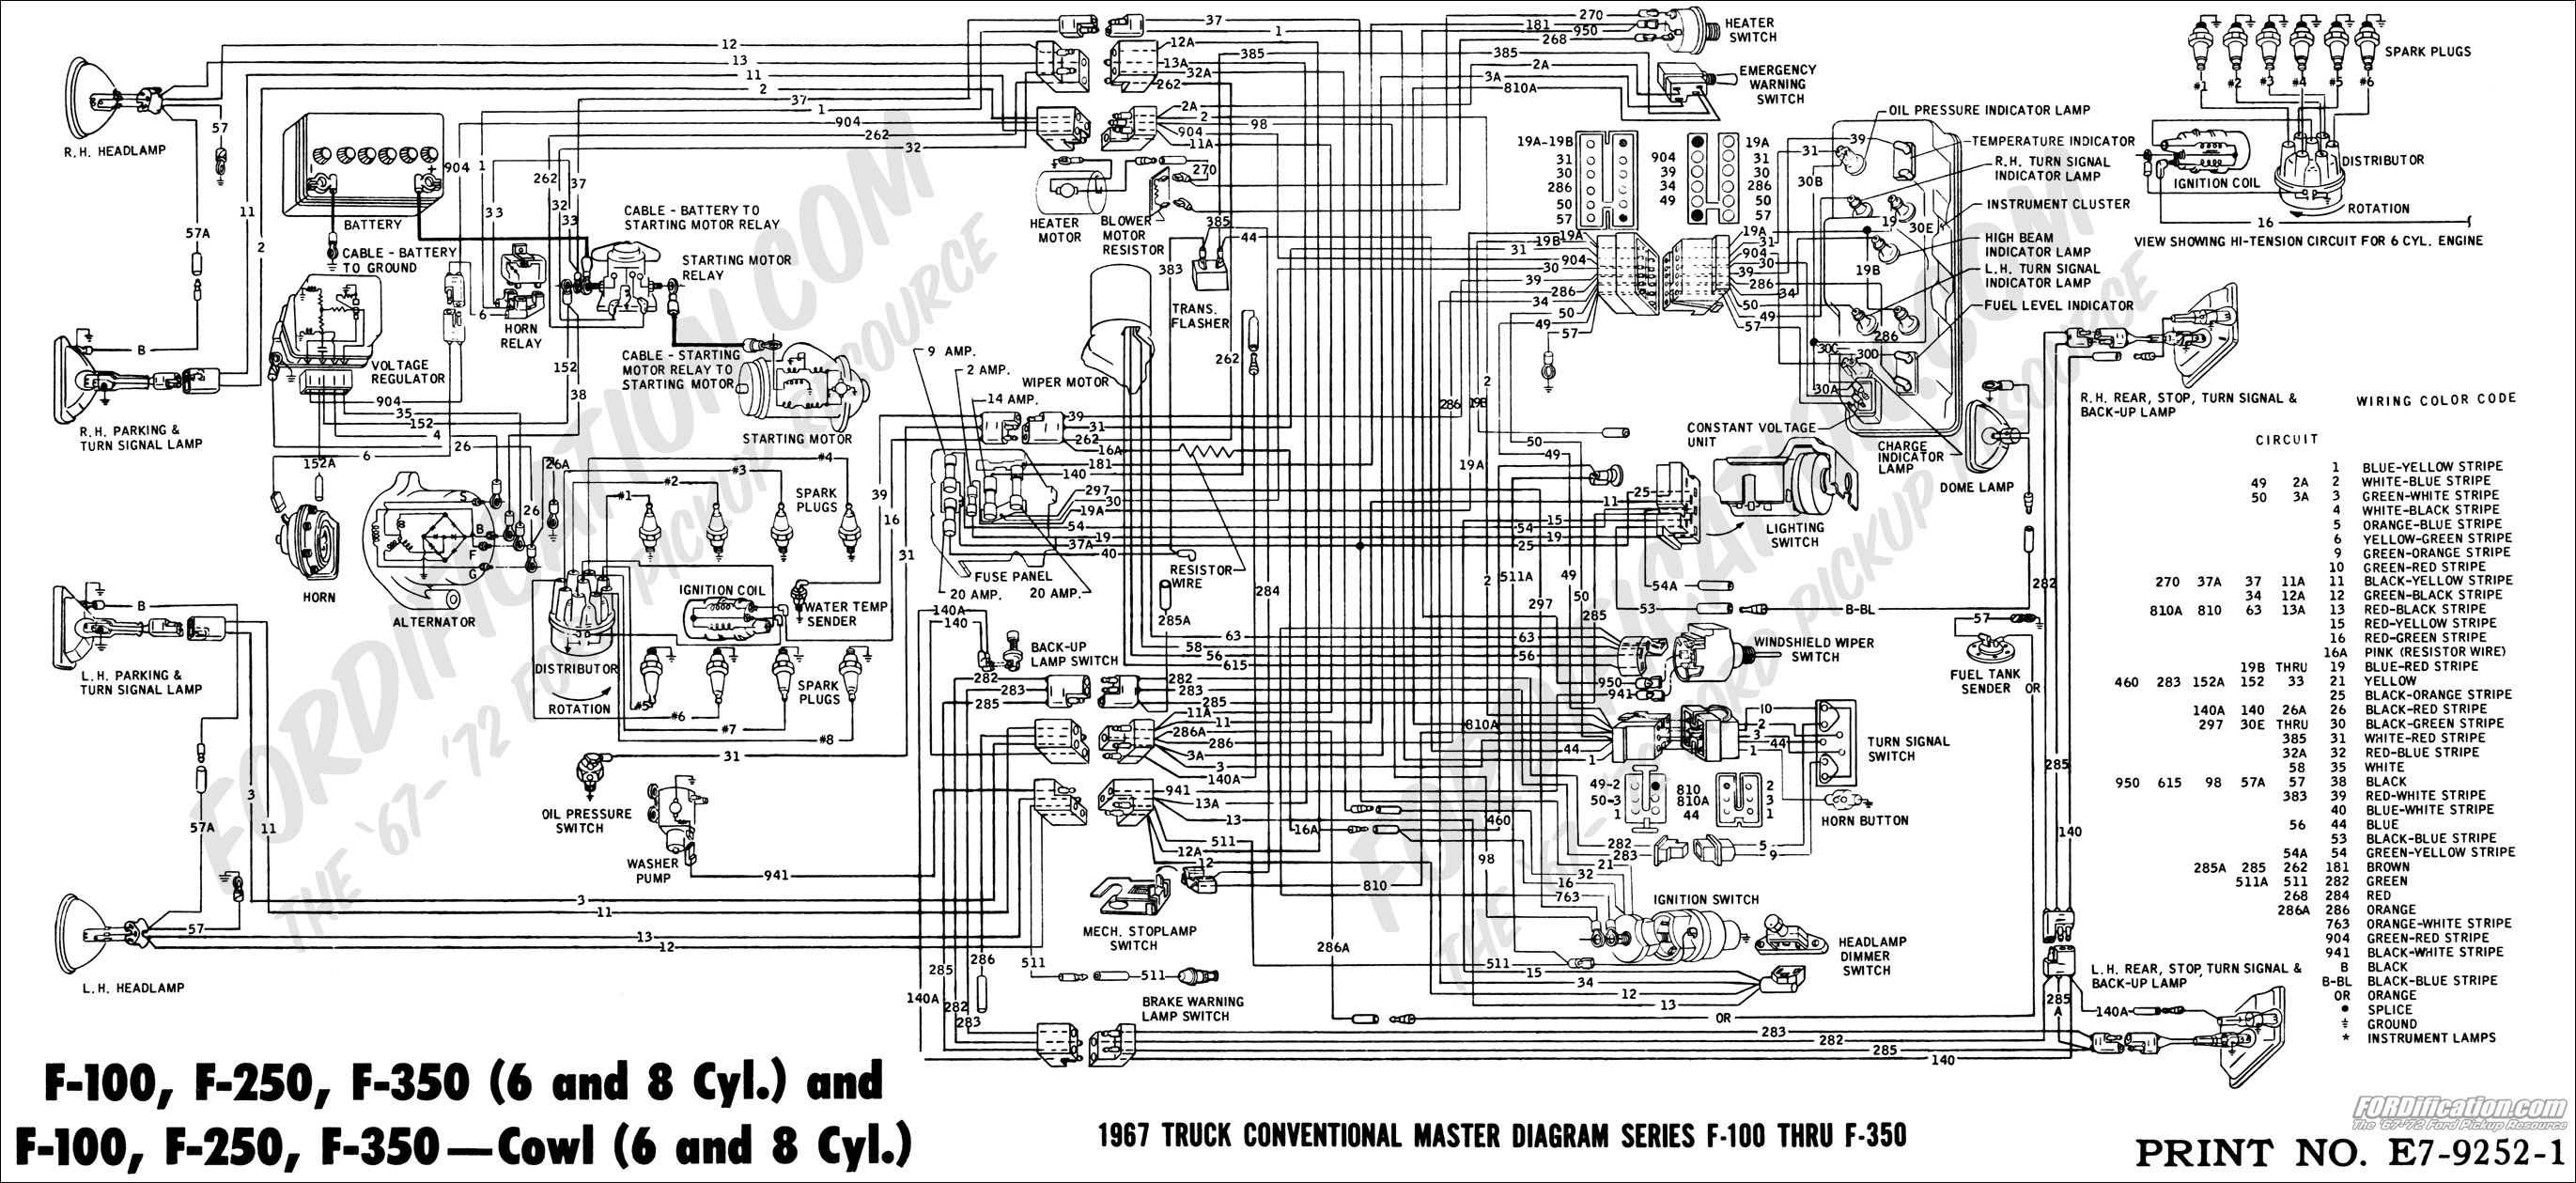 Wiring Diagram For 1967 Ford Fairlane Electricity 1969 Vacuum F150 Complete Diagrams U2022 Rh Brutallyhonest Co Chevy Truck Line